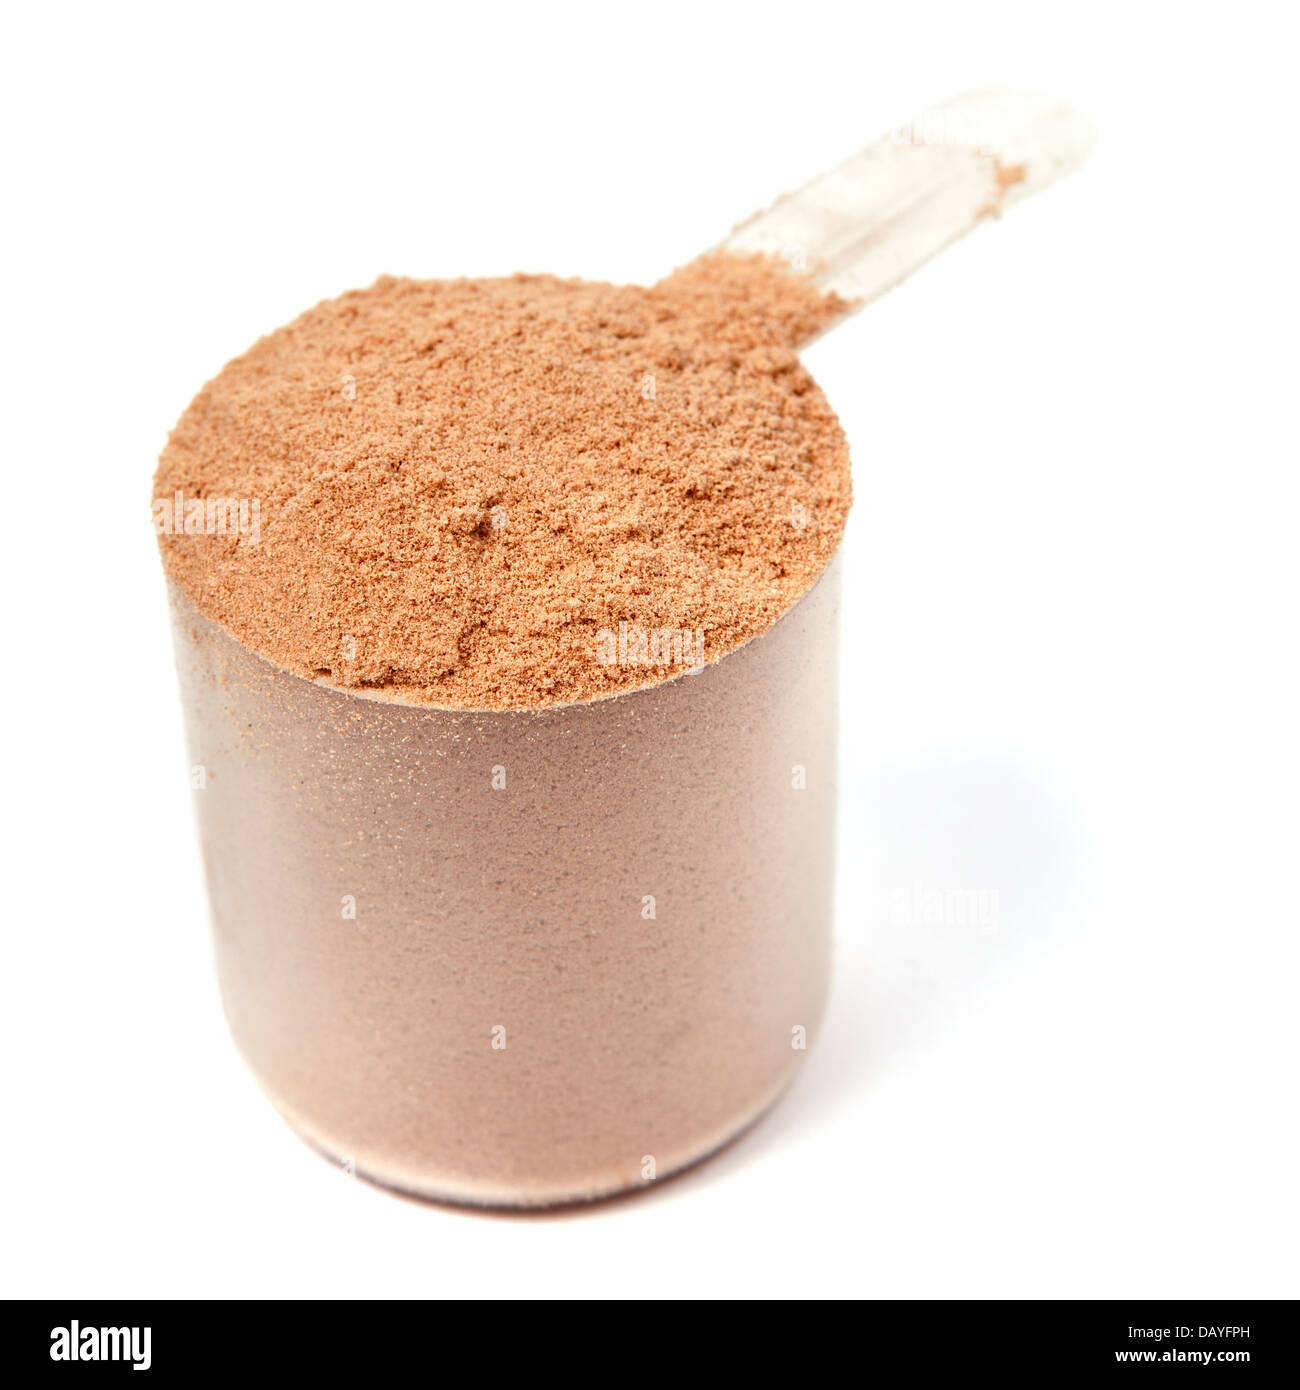 A scoop of chocolate whey protein powder isolated on white background - Stock Image